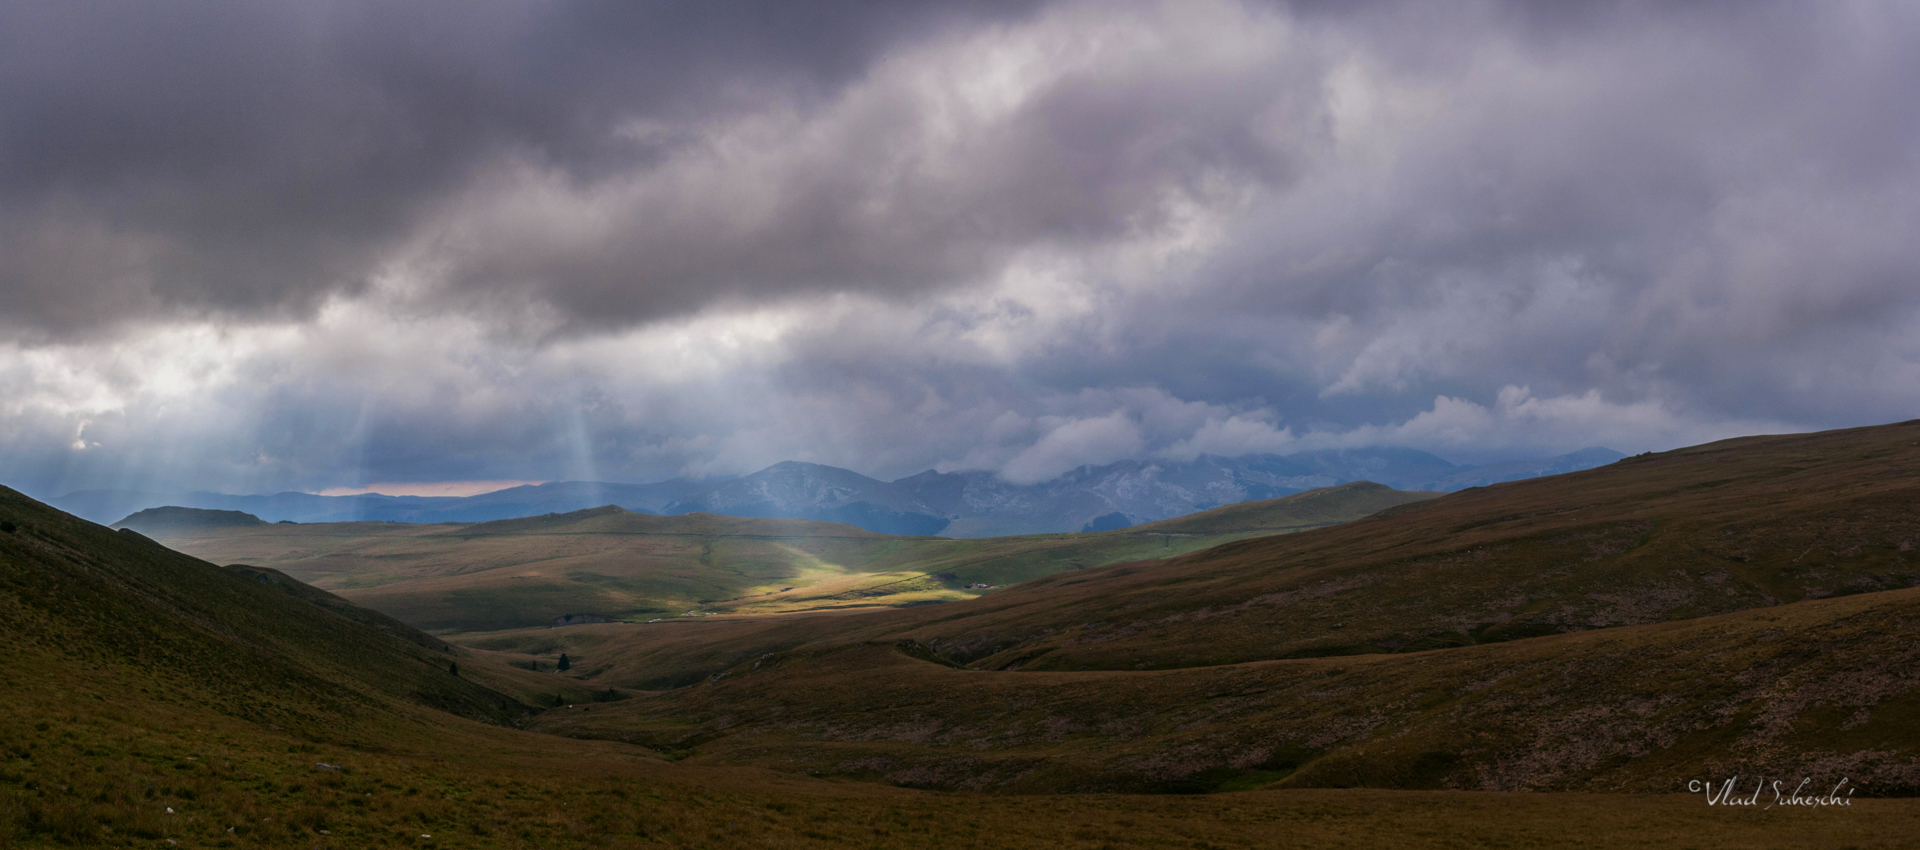 Storm Rays in Bucegi Mountains The Carpathians, Romania